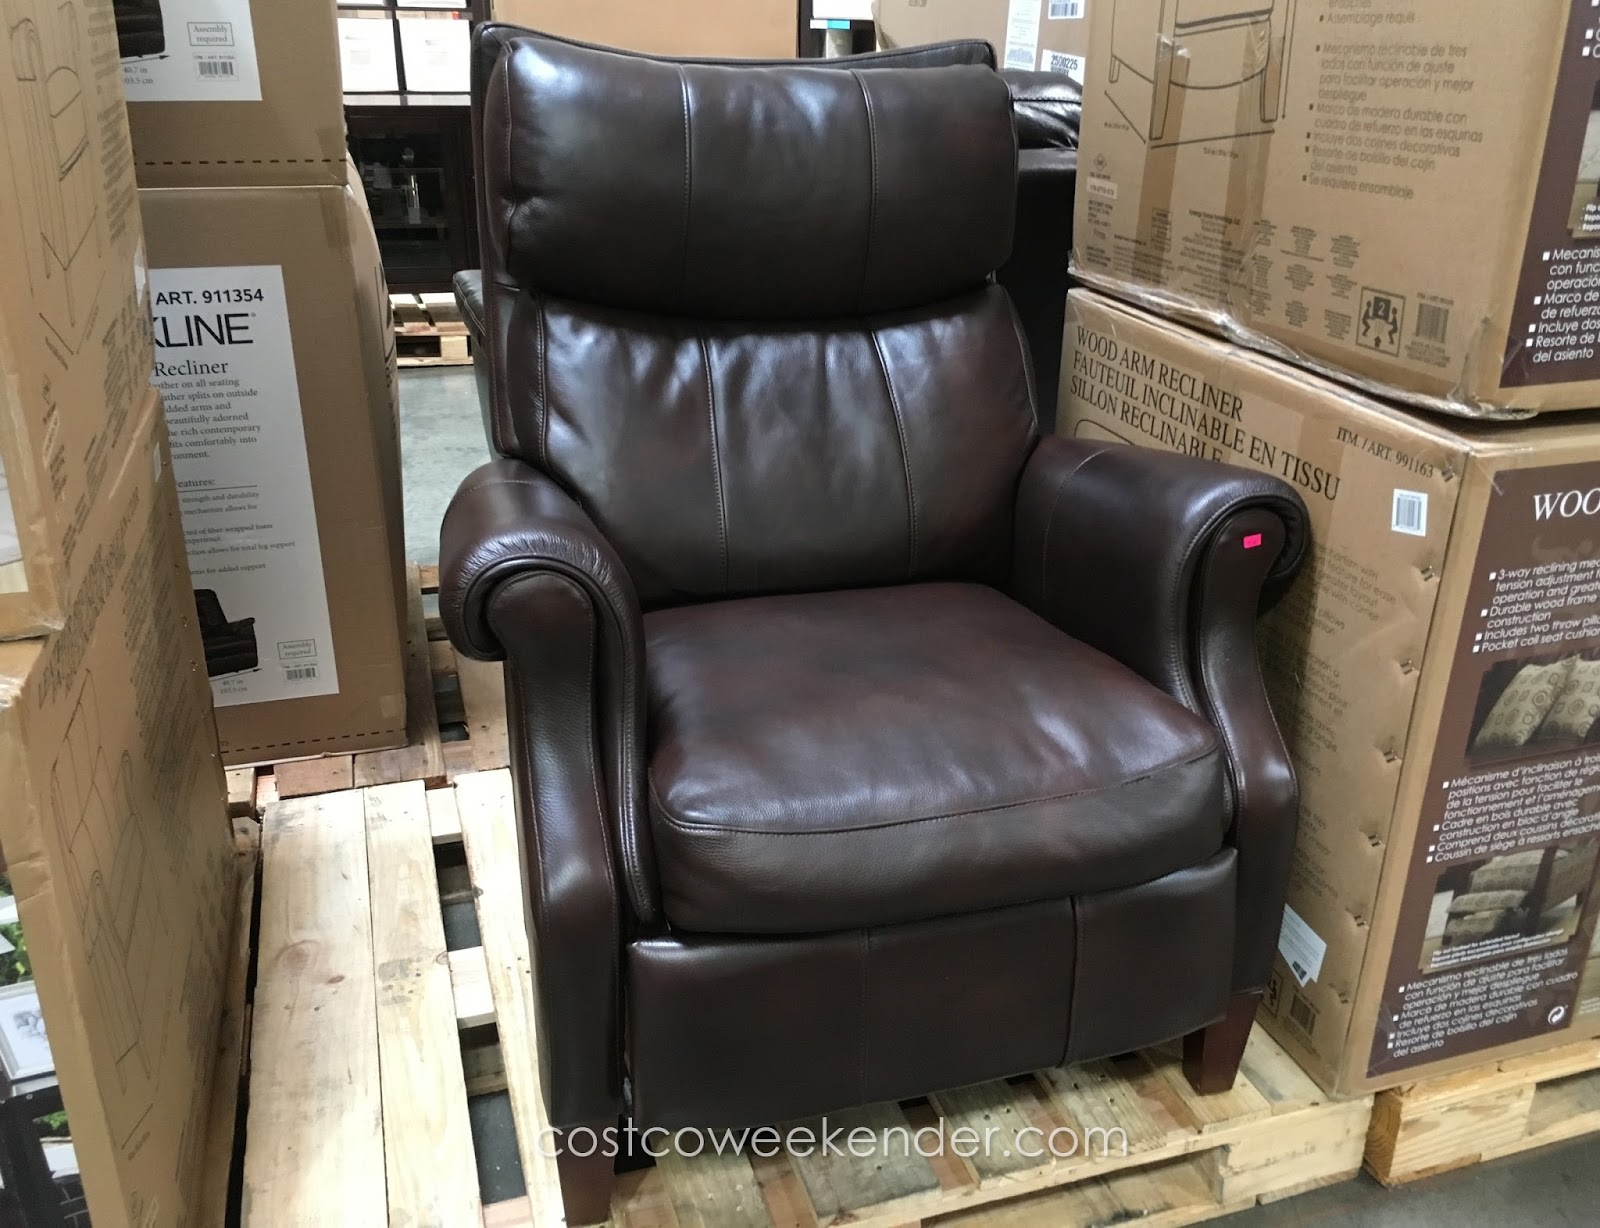 Lazy Sundays Deserve A Synergy Home Furnishings Leather Recliner